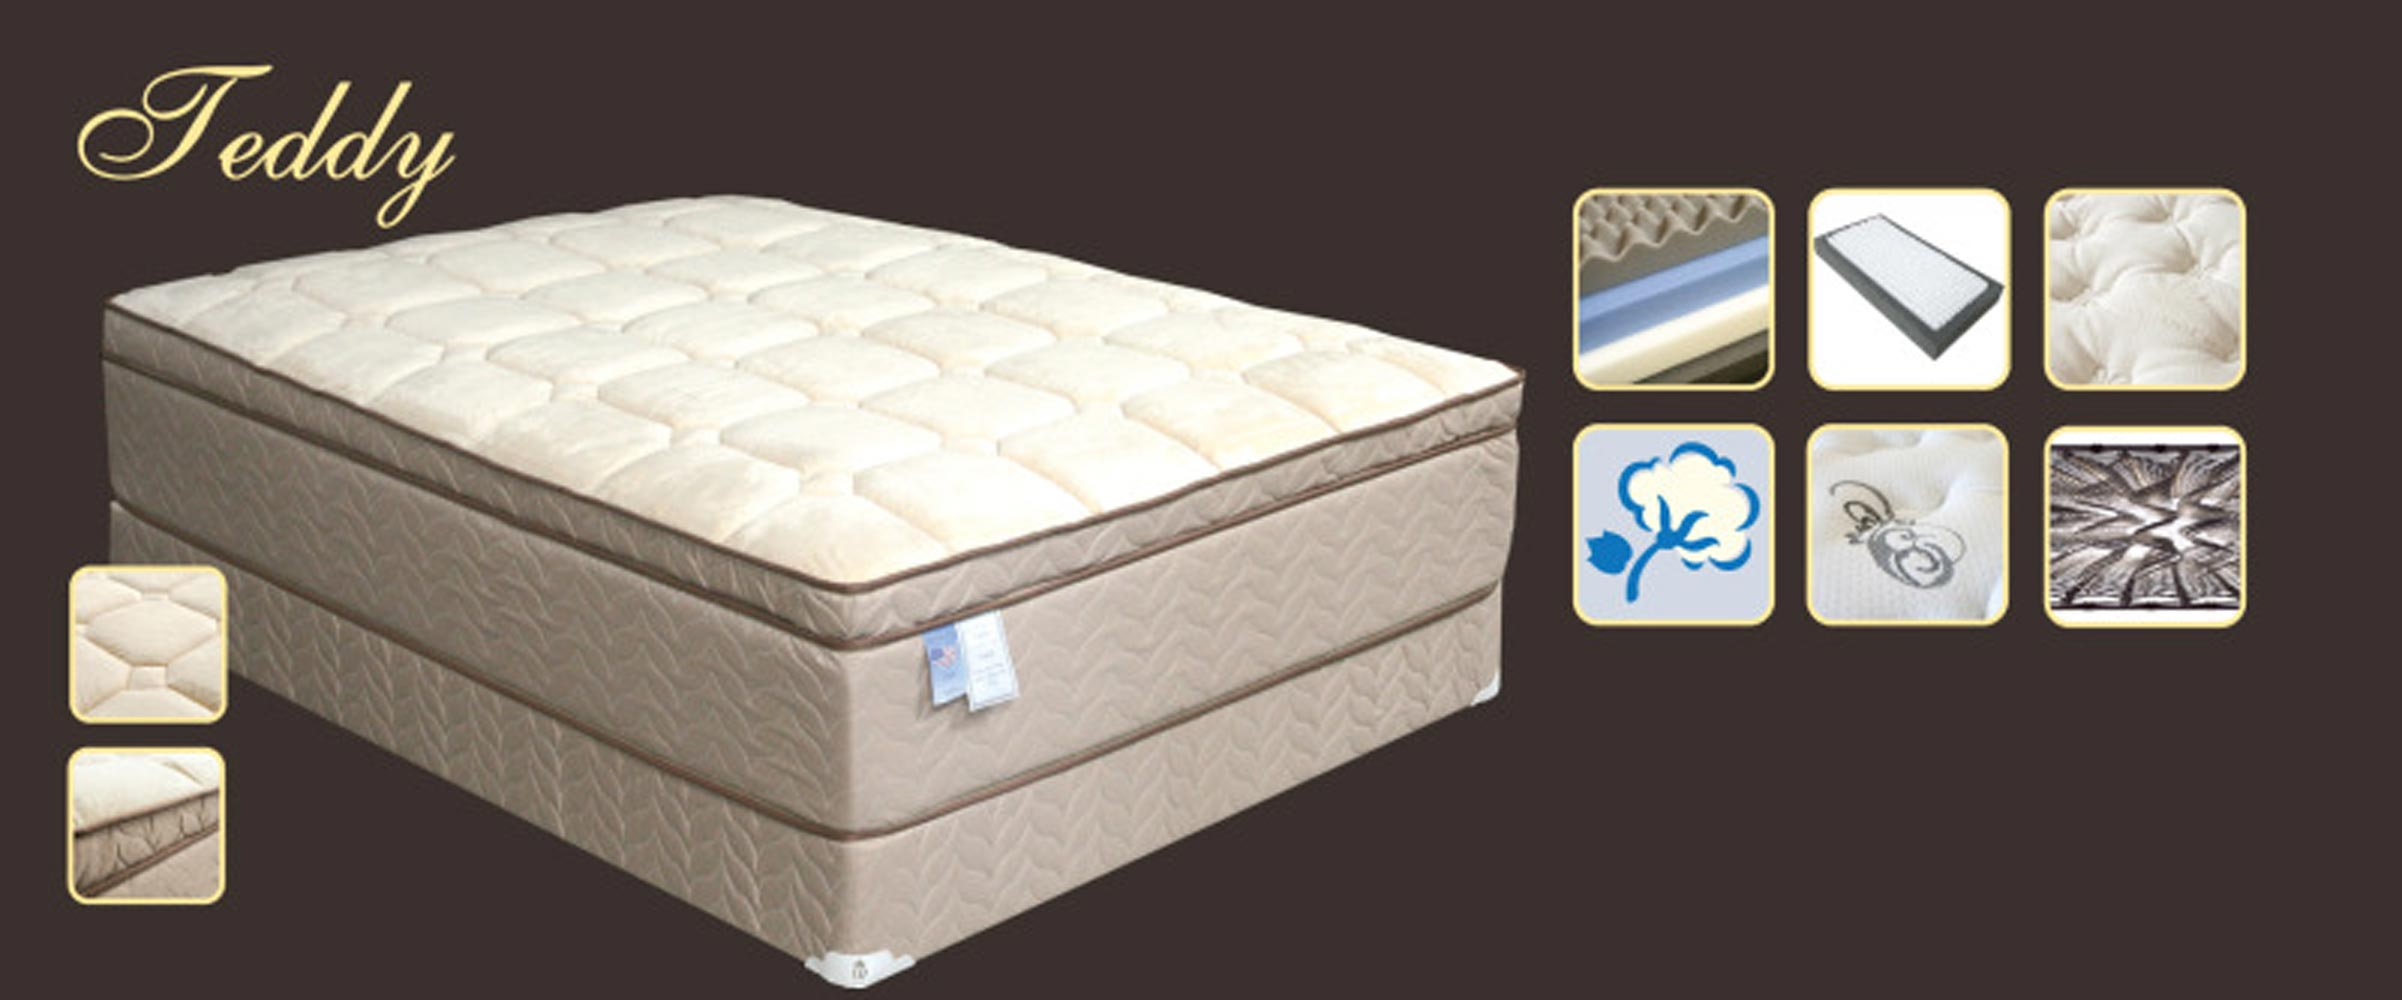 Teddy Bear Pillow-Top Mattress Set